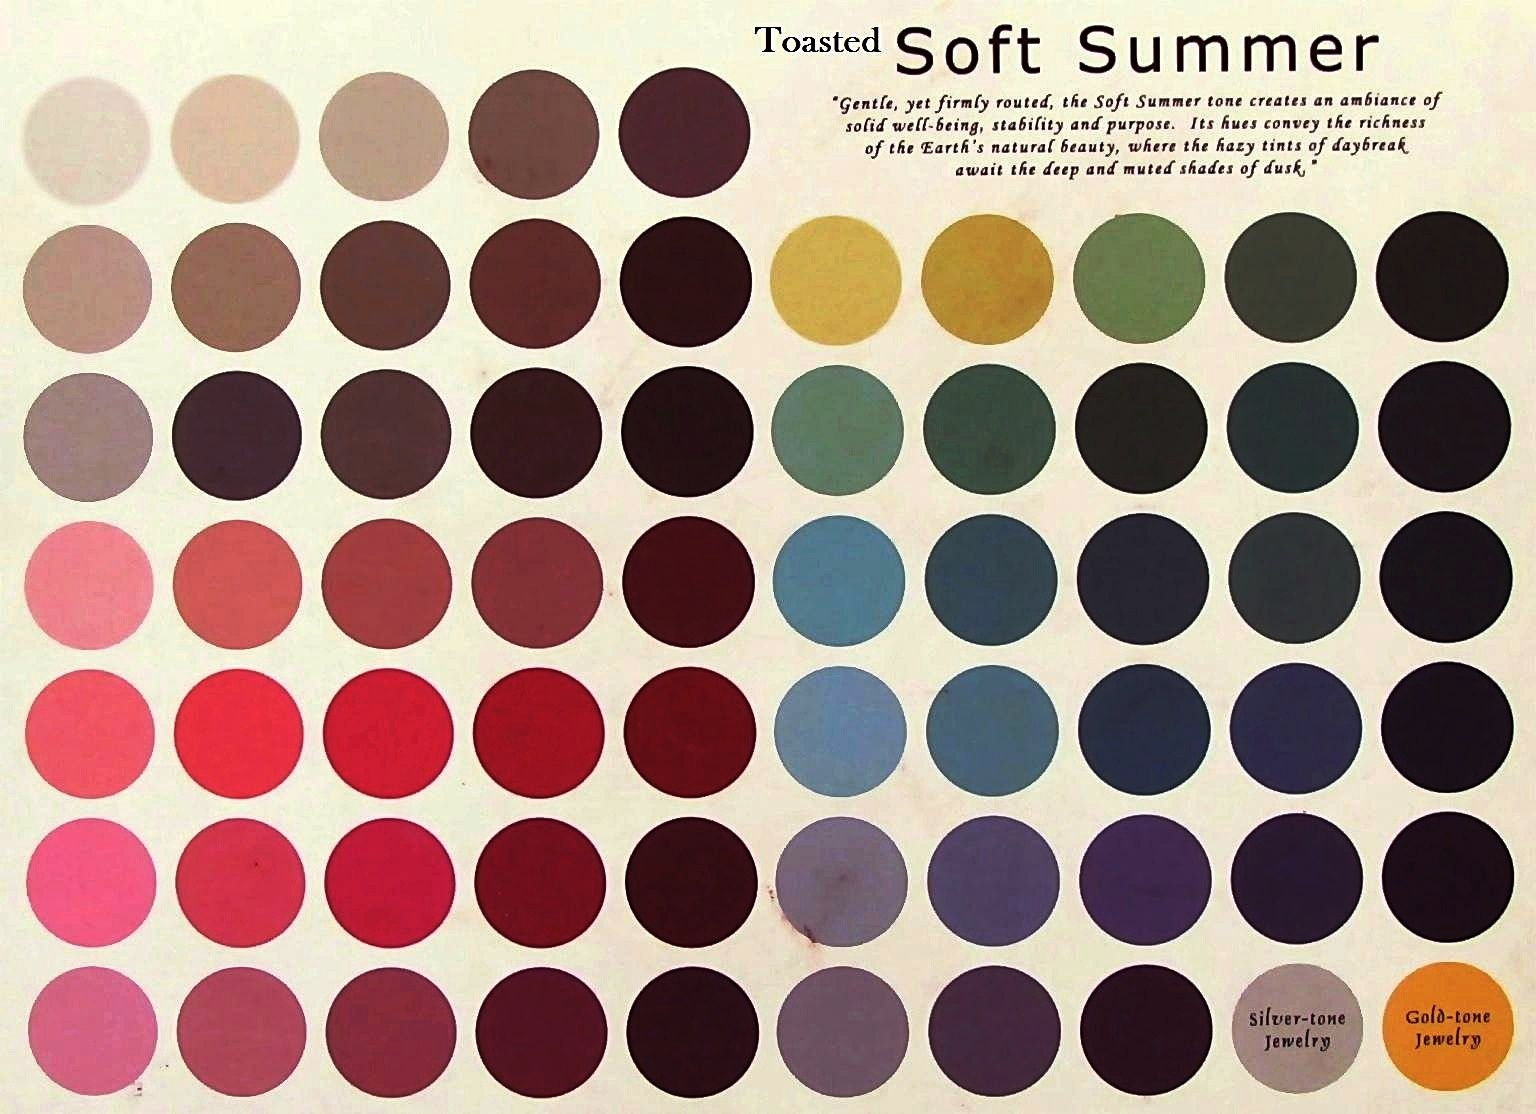 Toasted Soft Summer : tanned cool colors snuffed